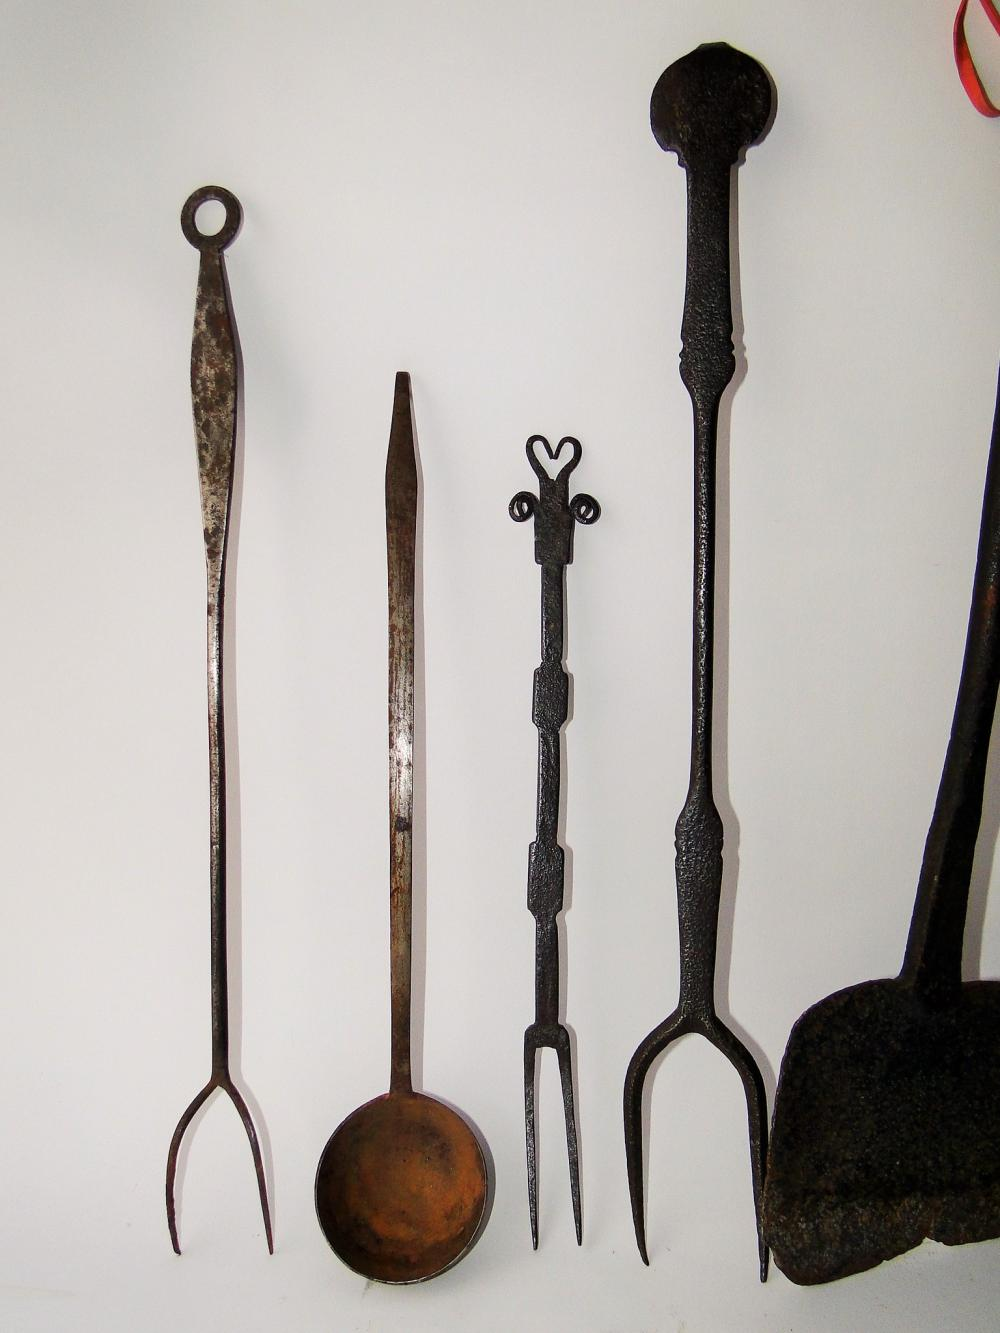 LOT FIVE 19TH C COOKING ITEMS